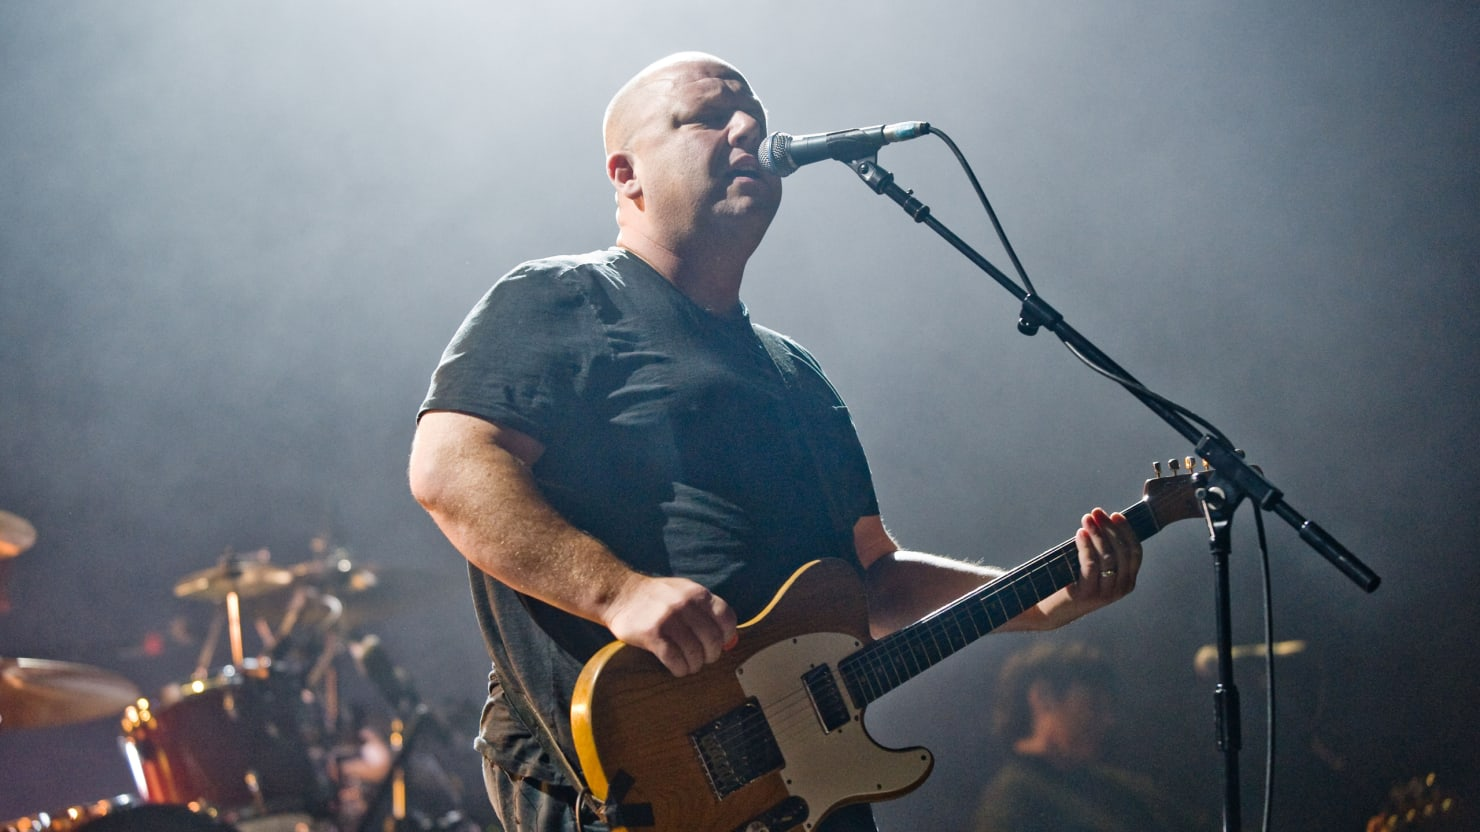 The Pixies Talk About Their Reunion New Music And A Missing Band Member